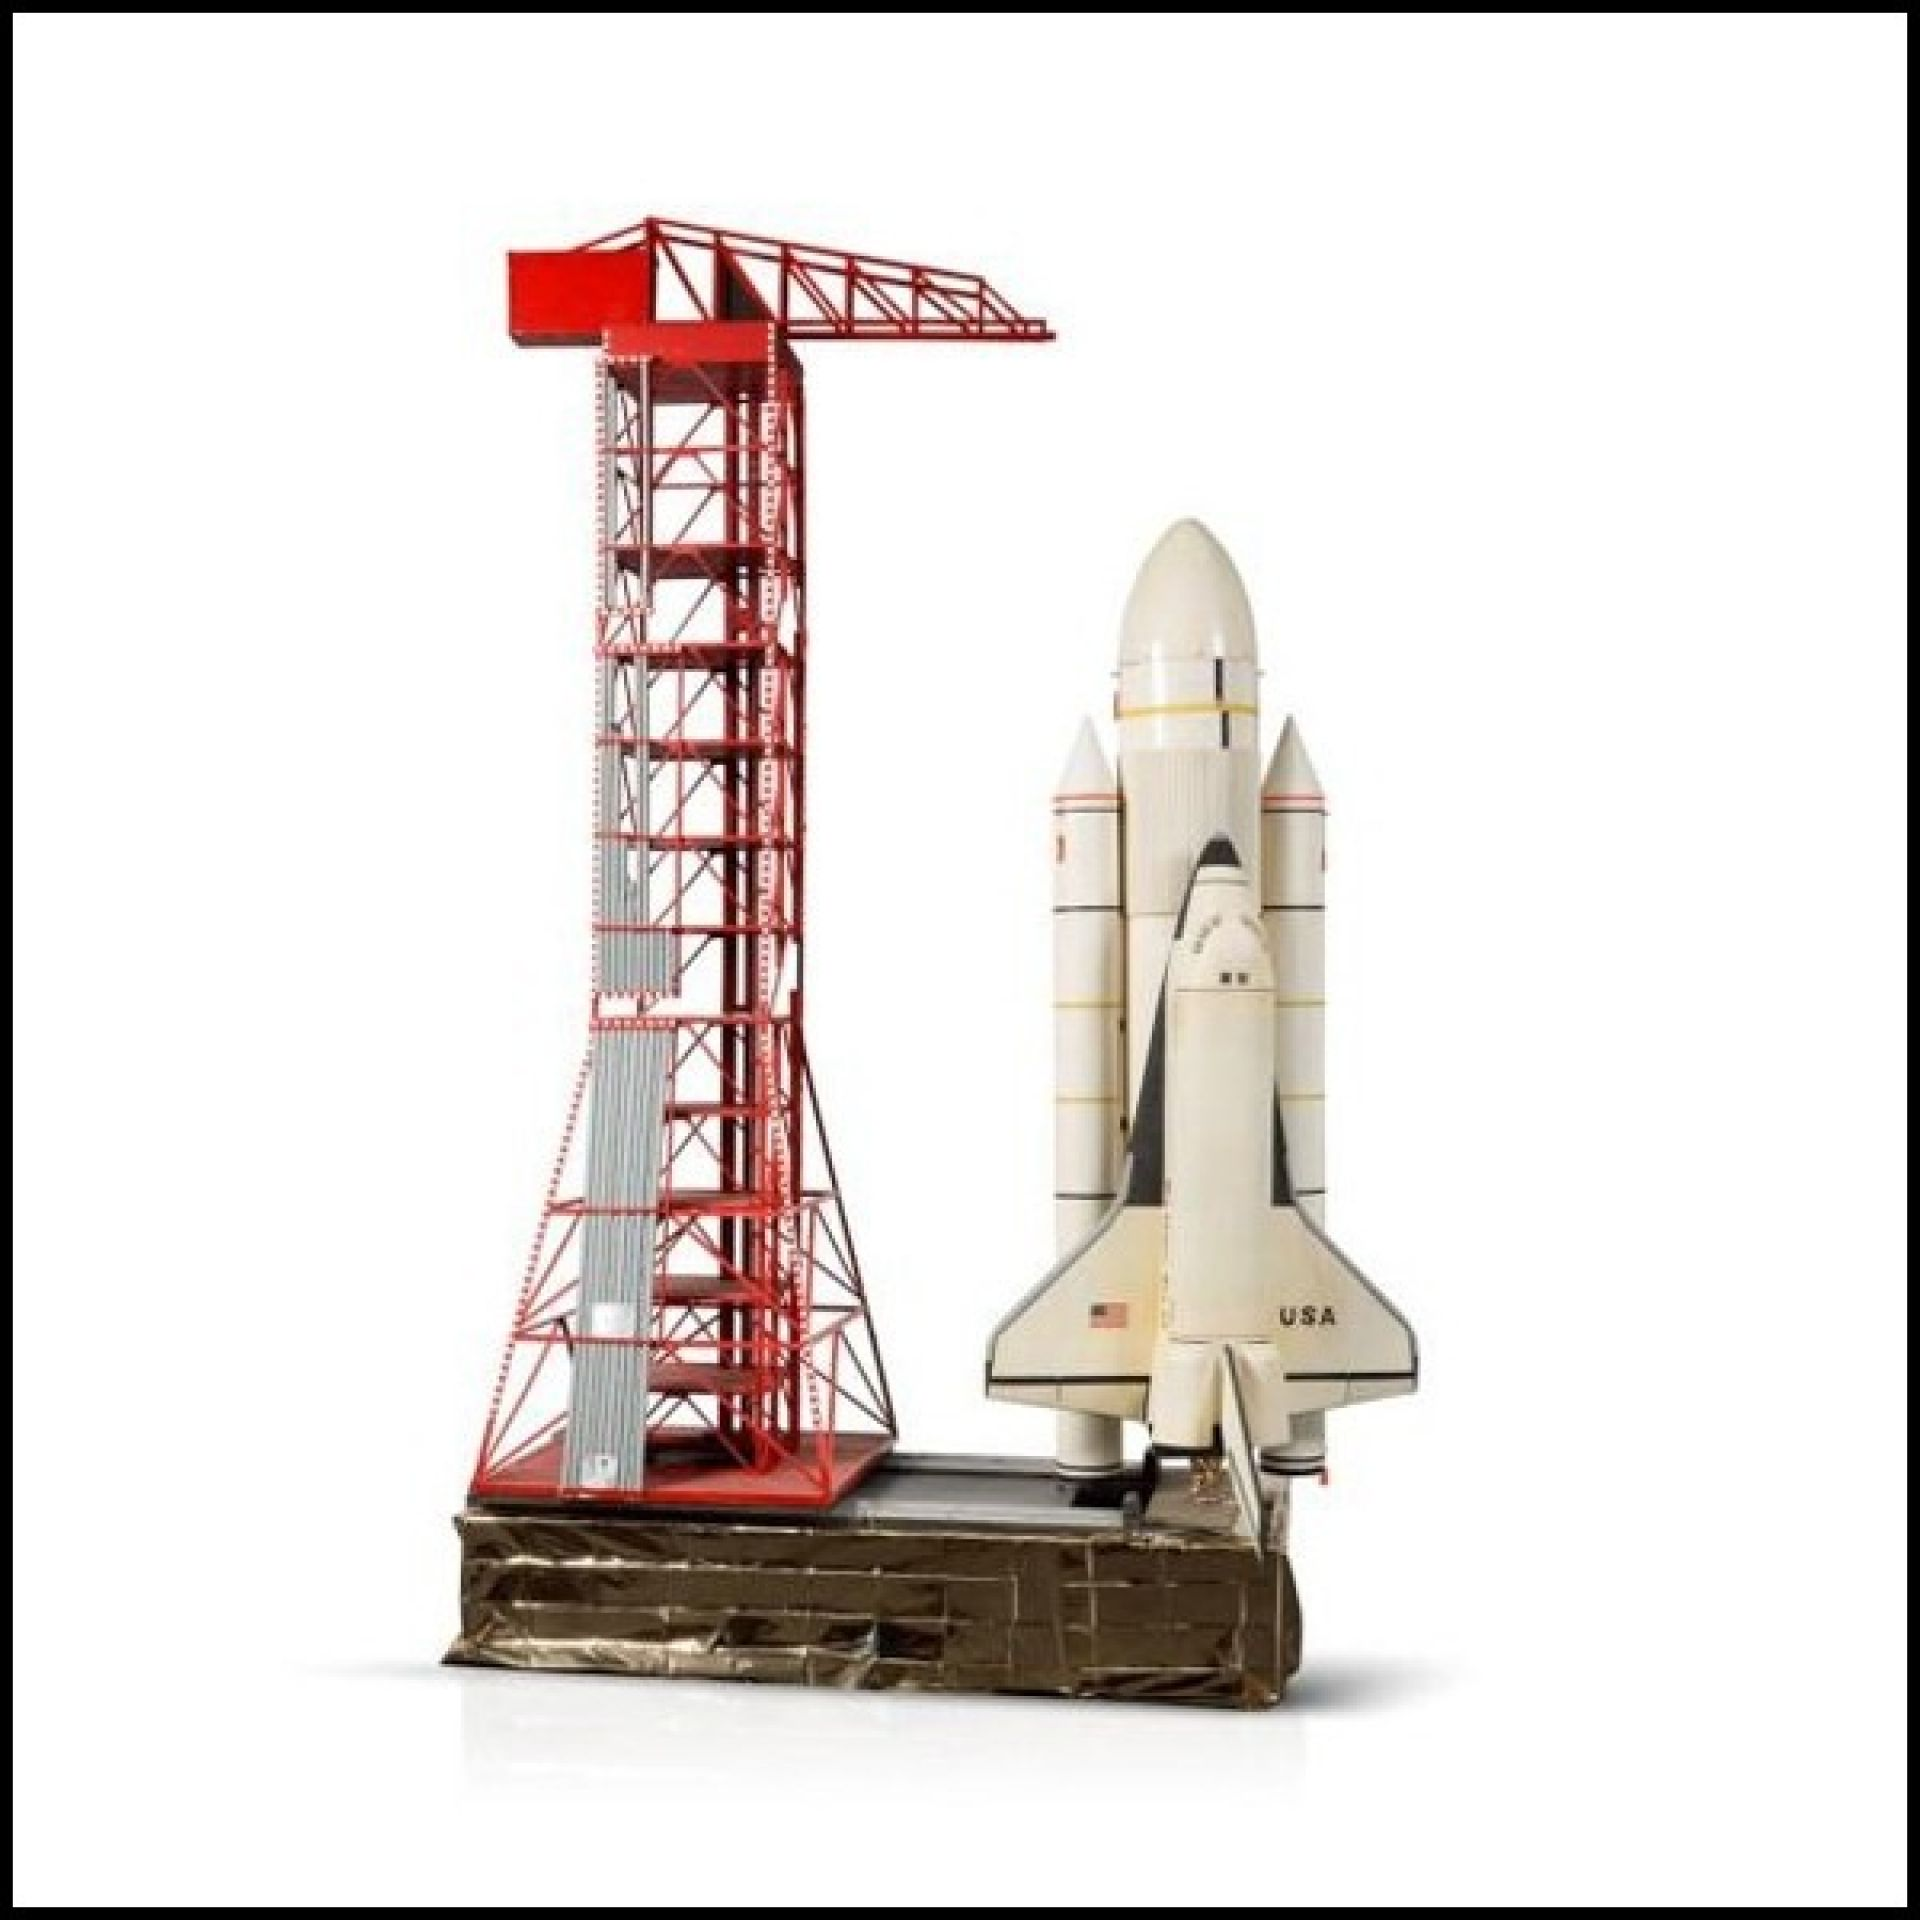 COLUMBIA SHUTTLE AND RESIN MODEL COLUMBIA SHUTTLE COLUMBIA PC-SHUTTLE COLUMBIA